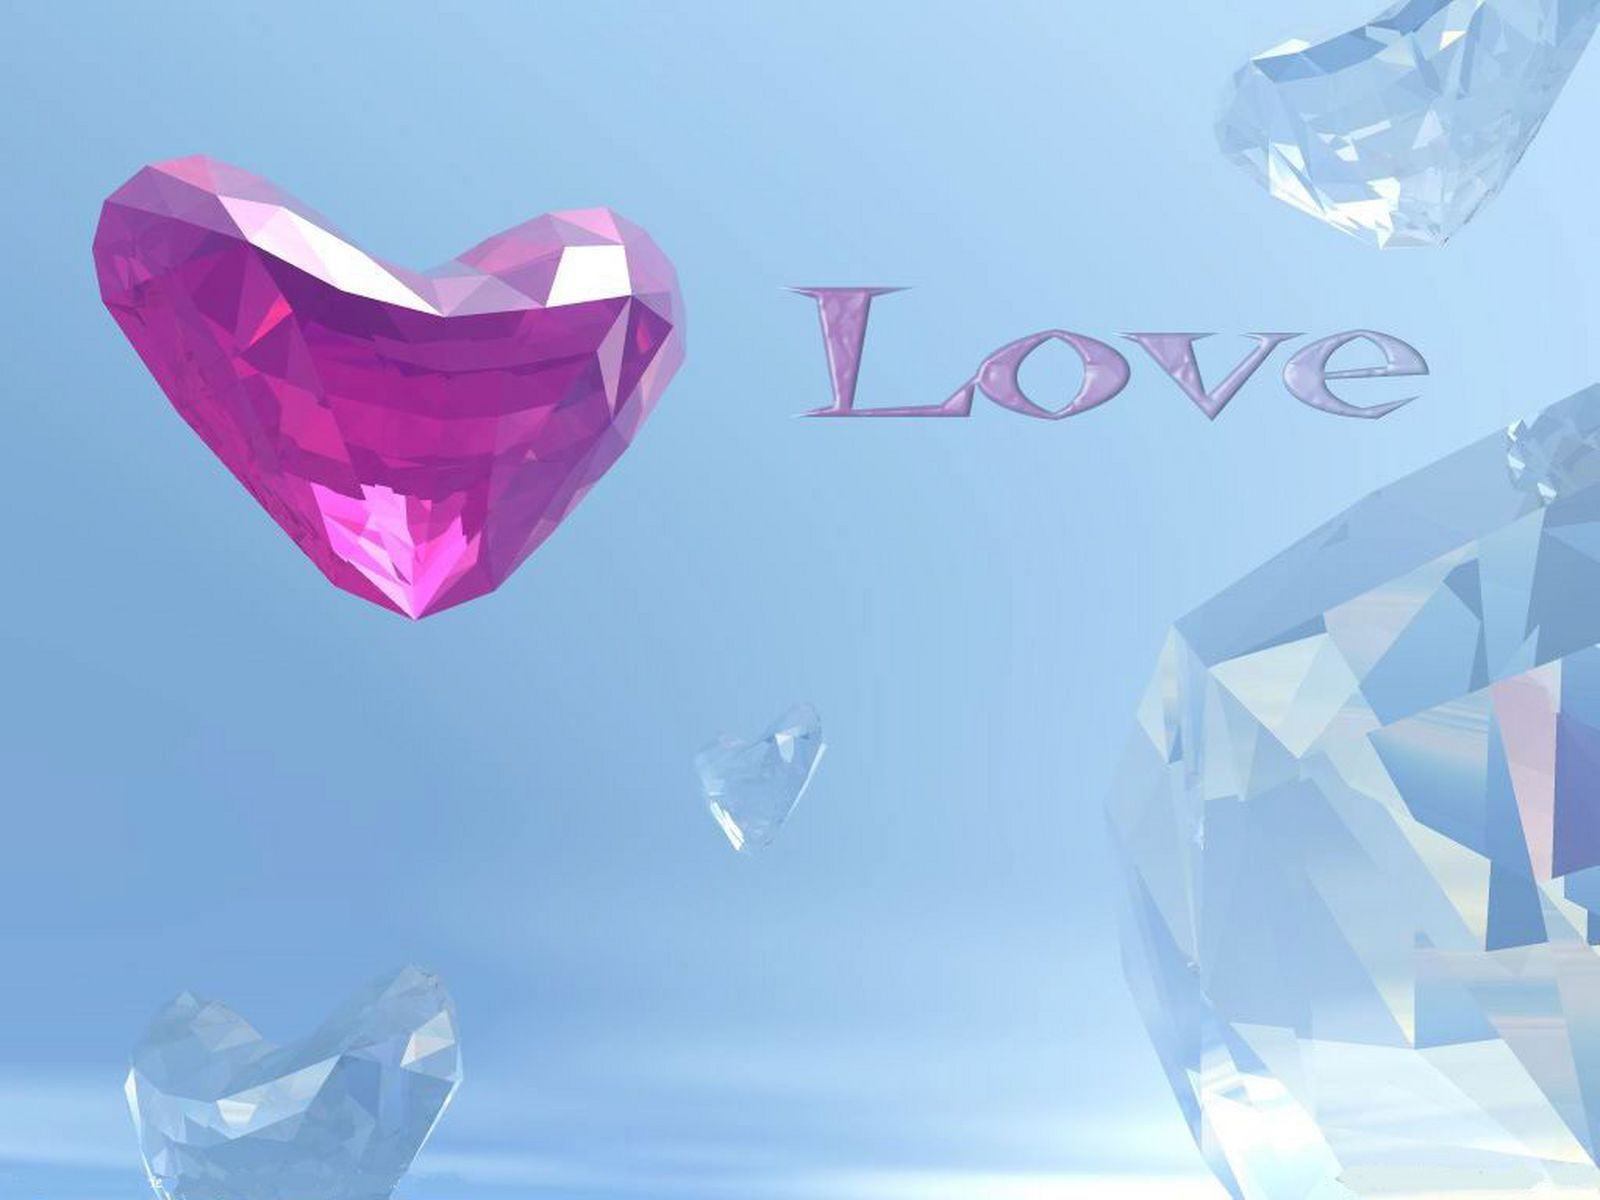 Love Is All Wallpaper : Love Wallpapers Hot Picures: Love Wallpaper Backgrounds